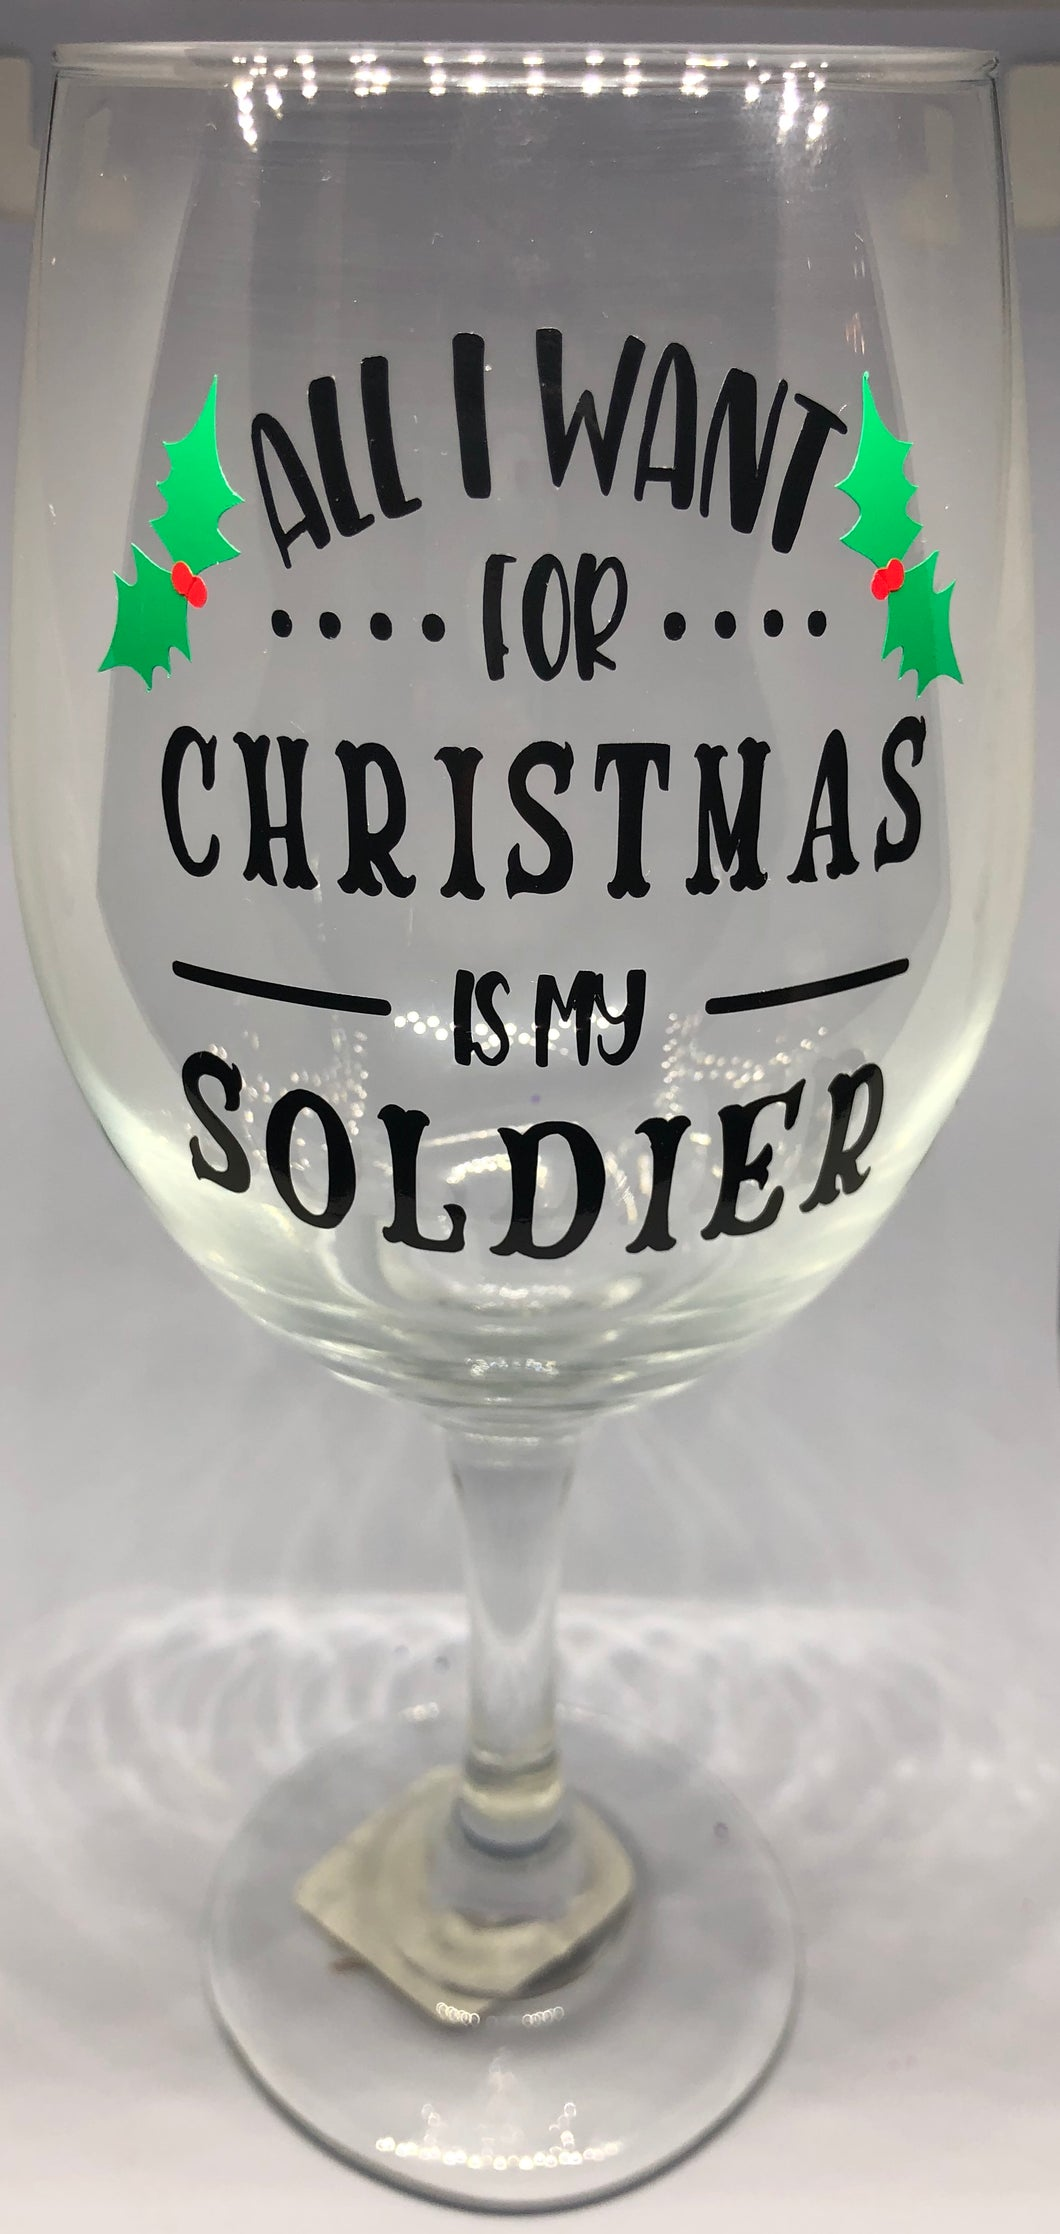 All I Want For Christmas Is My Soldier - Izzy Marie's